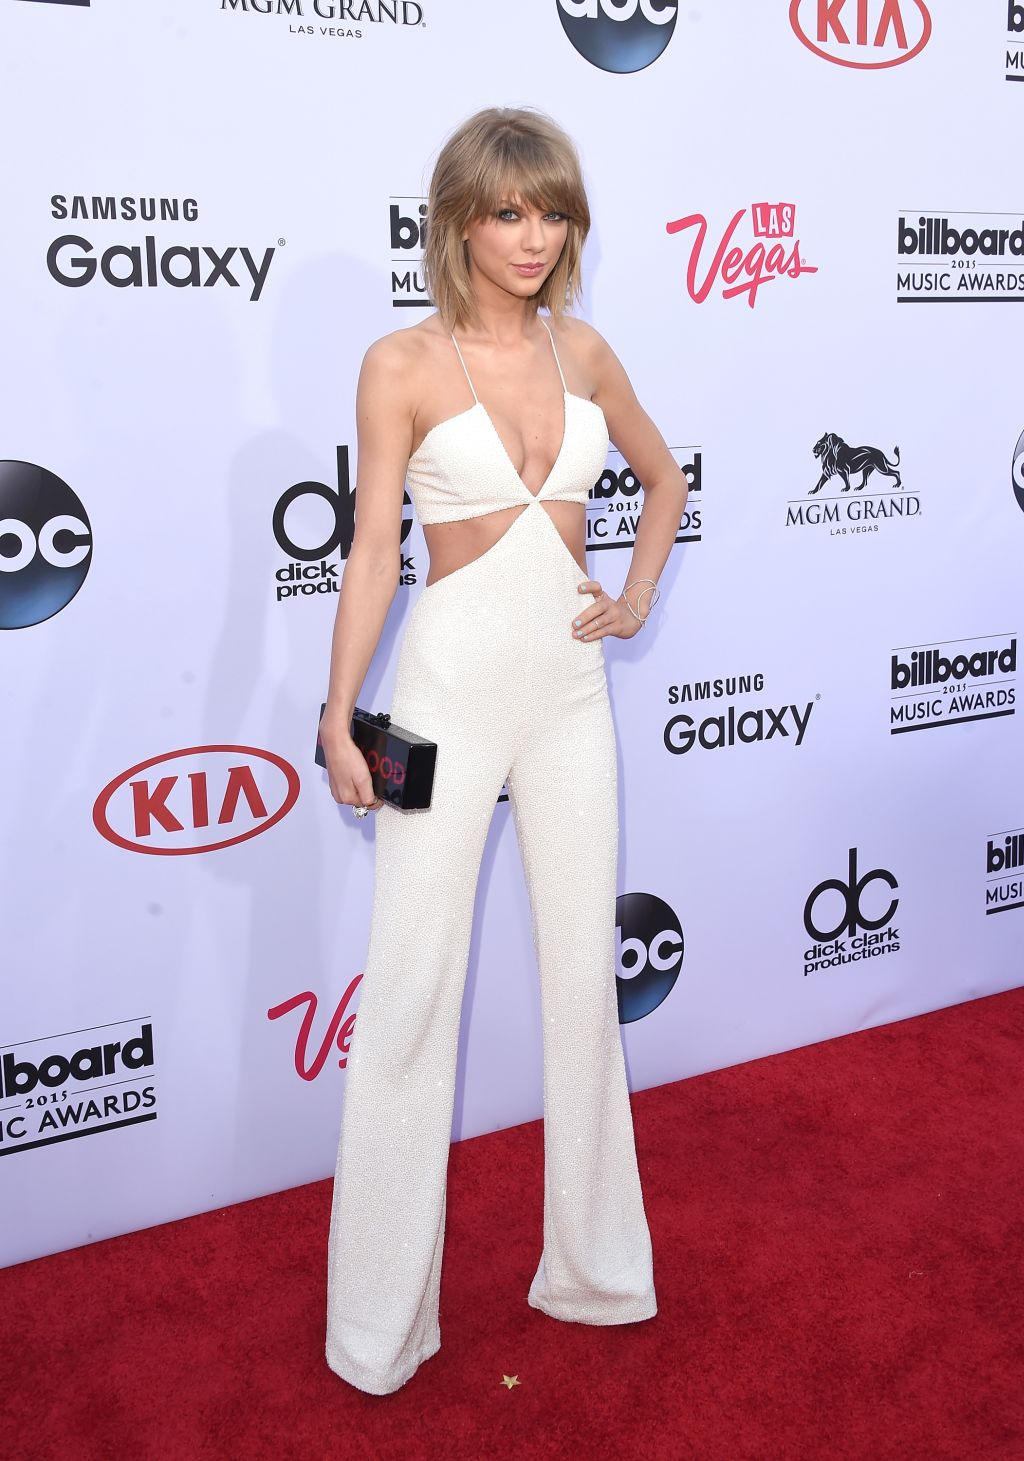 2015 Billboard Music Awards - Arrivals ©Getty Images